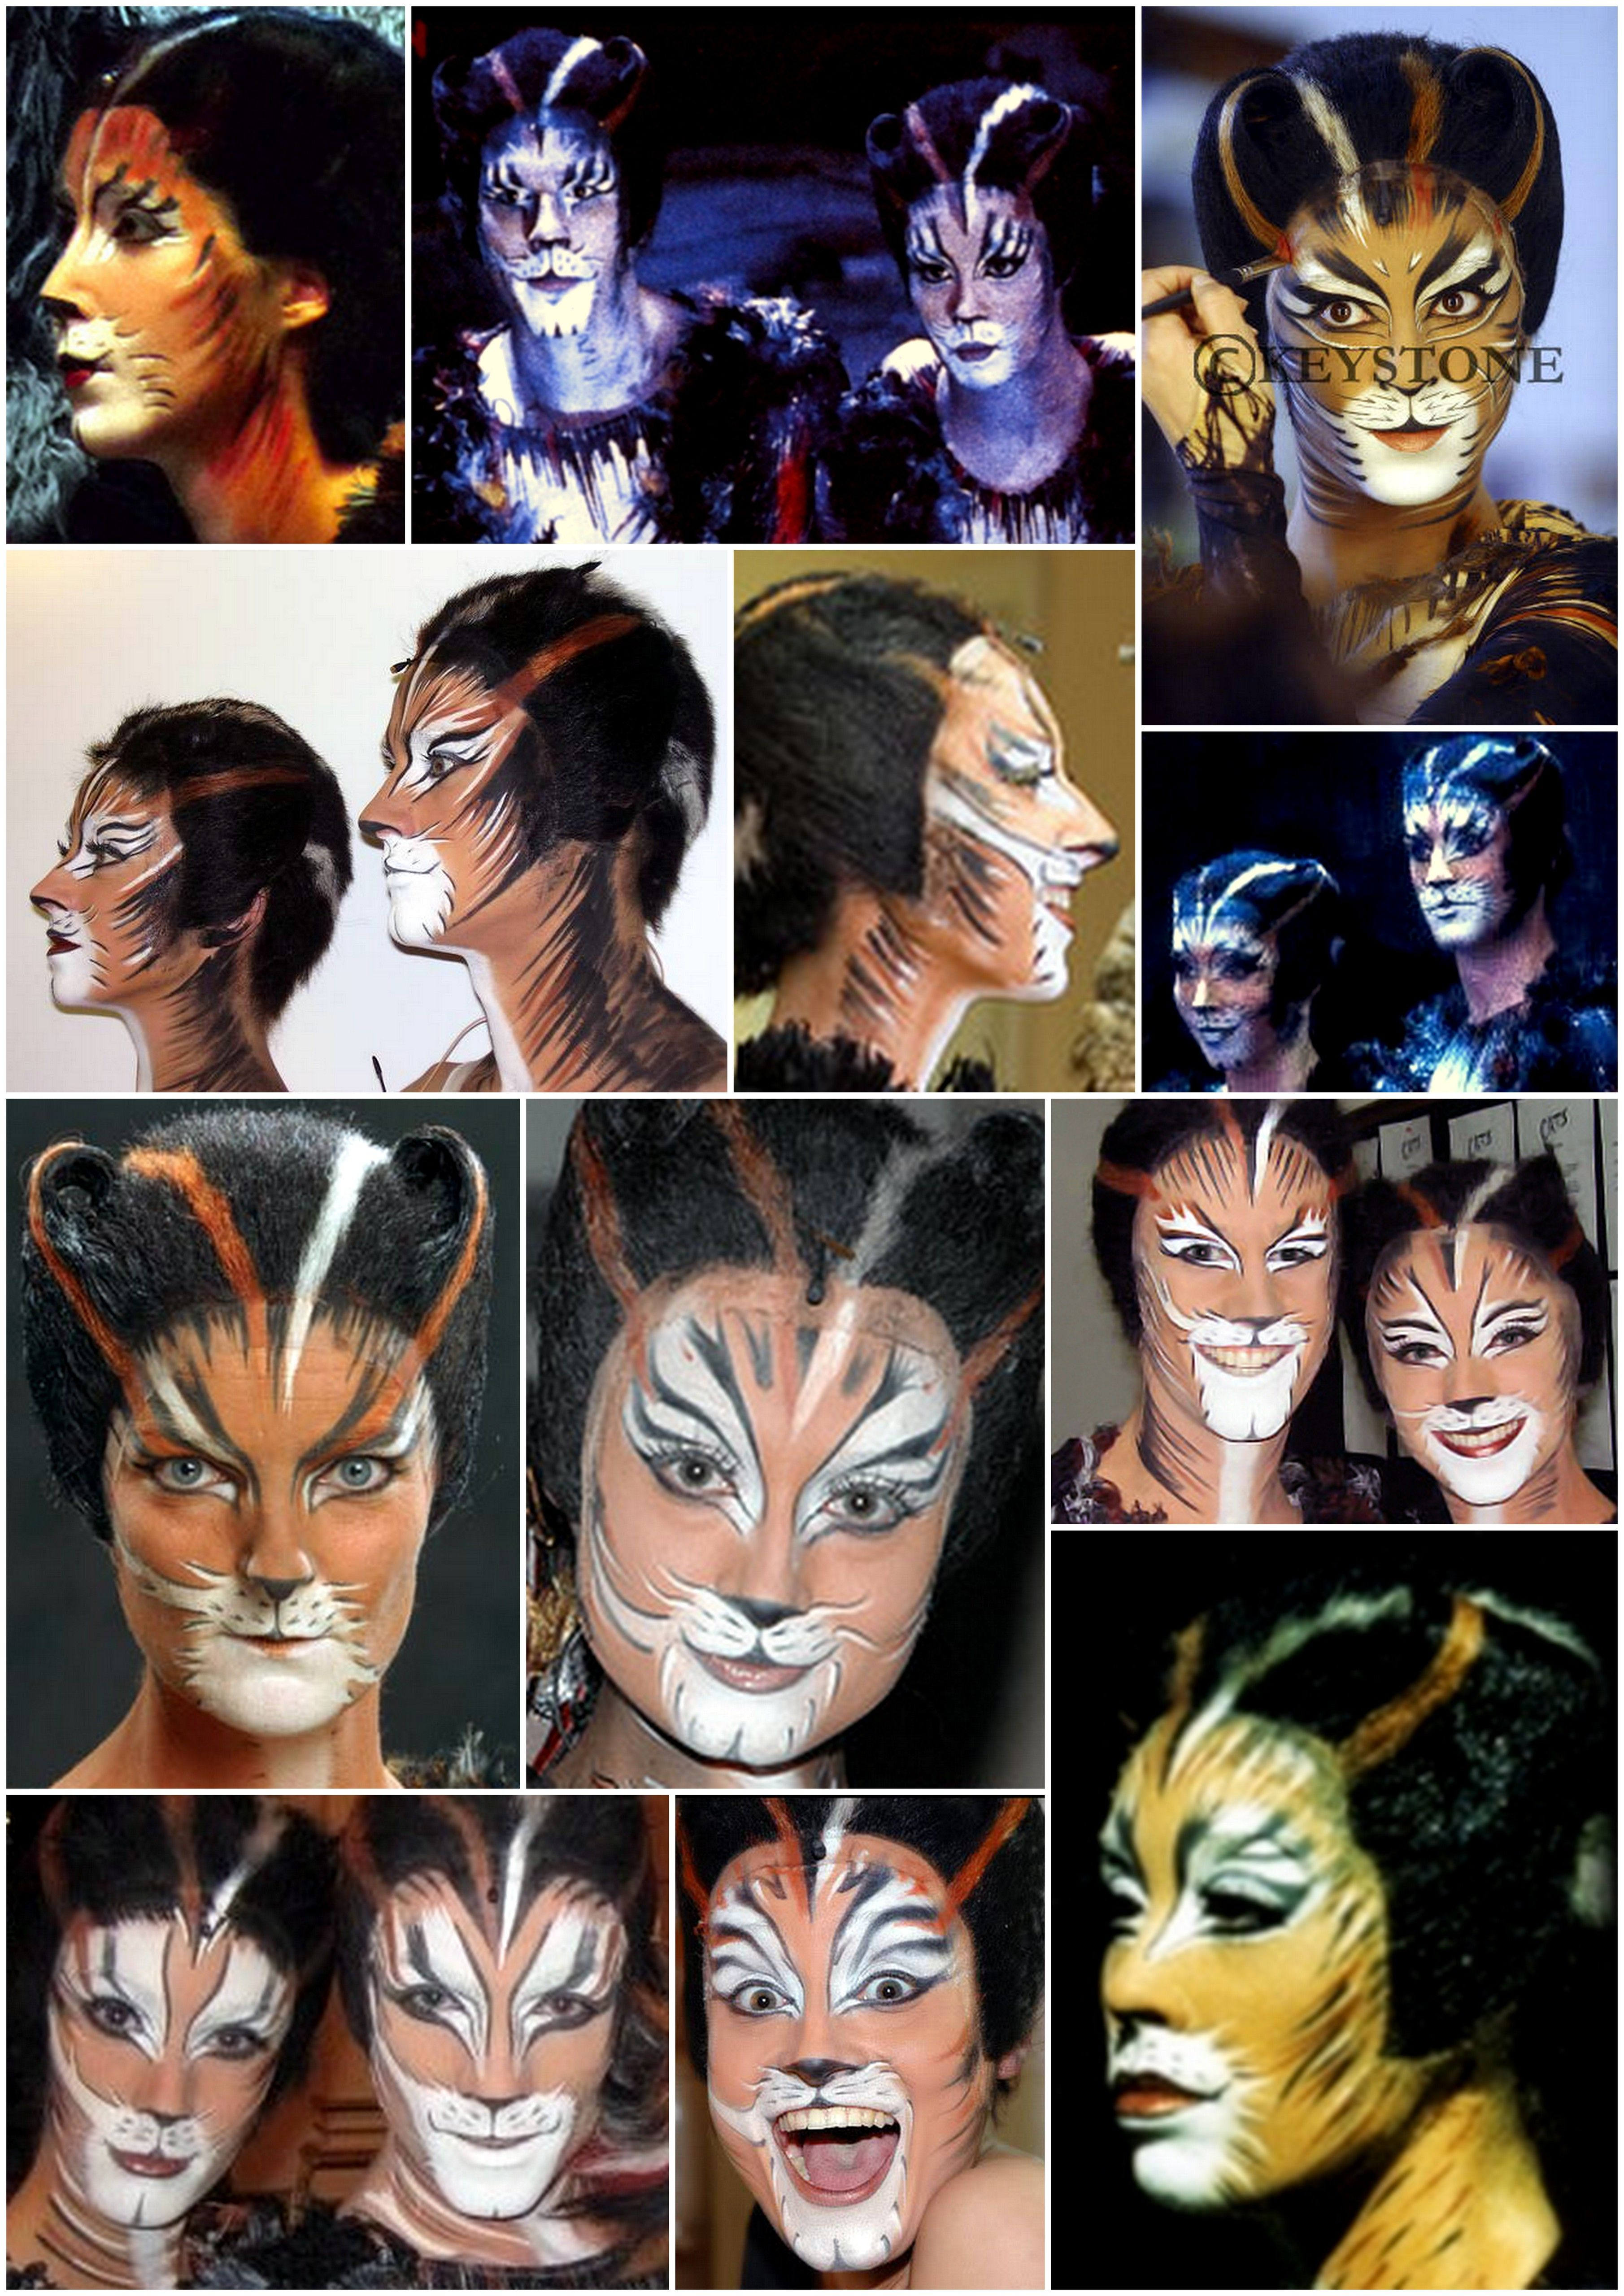 Coricopat and Tantomile makeup references Jellicle cats